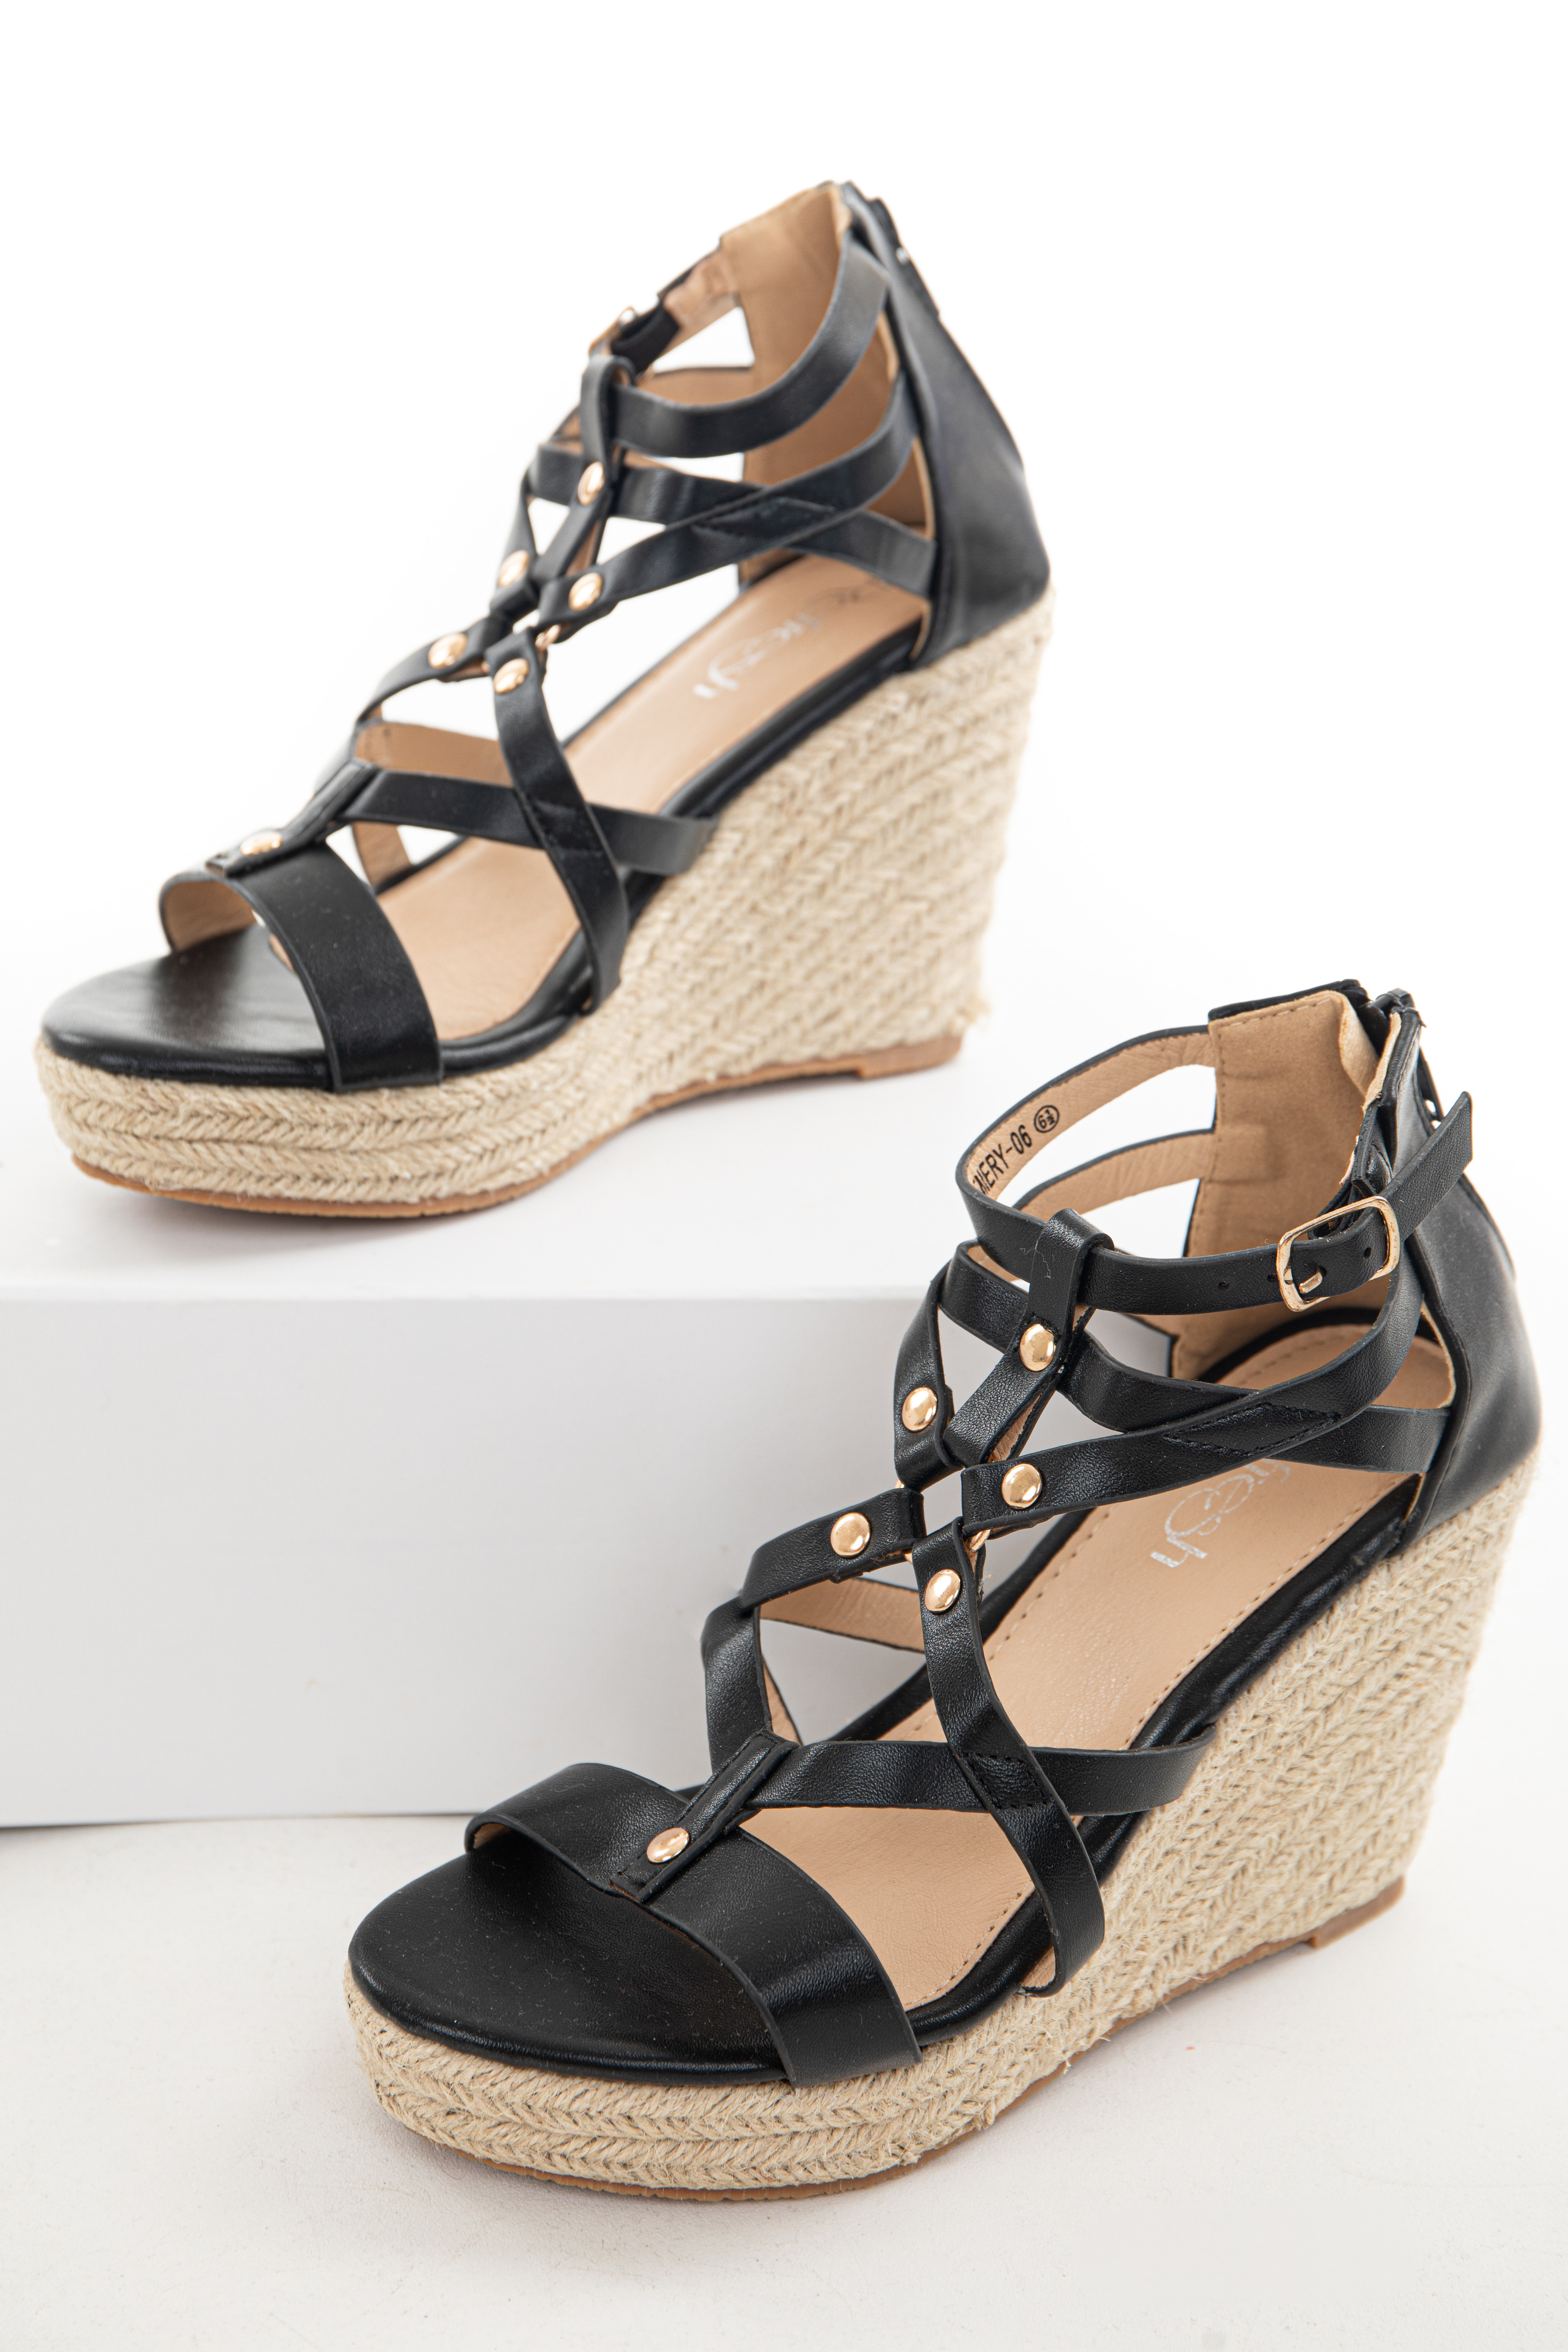 Black Strappy Espadrille Wedges with Studs